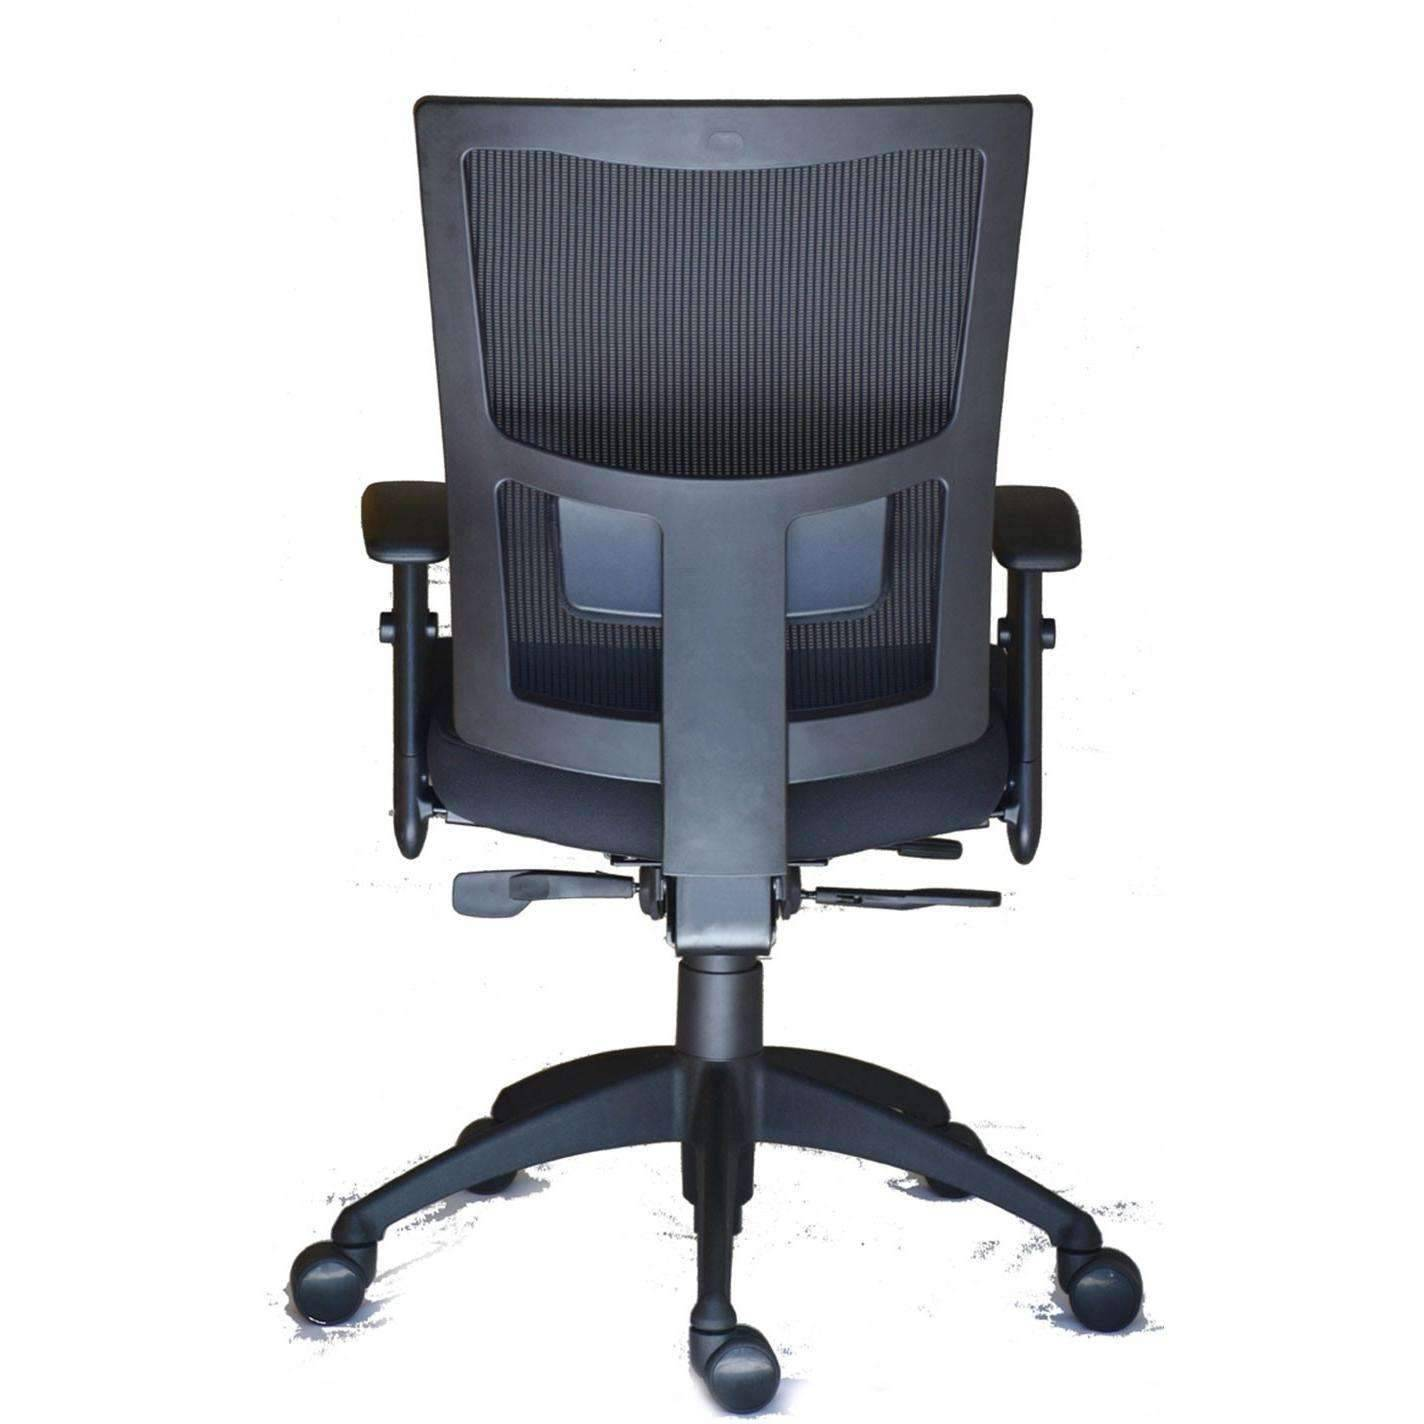 office chairs - sit healthier